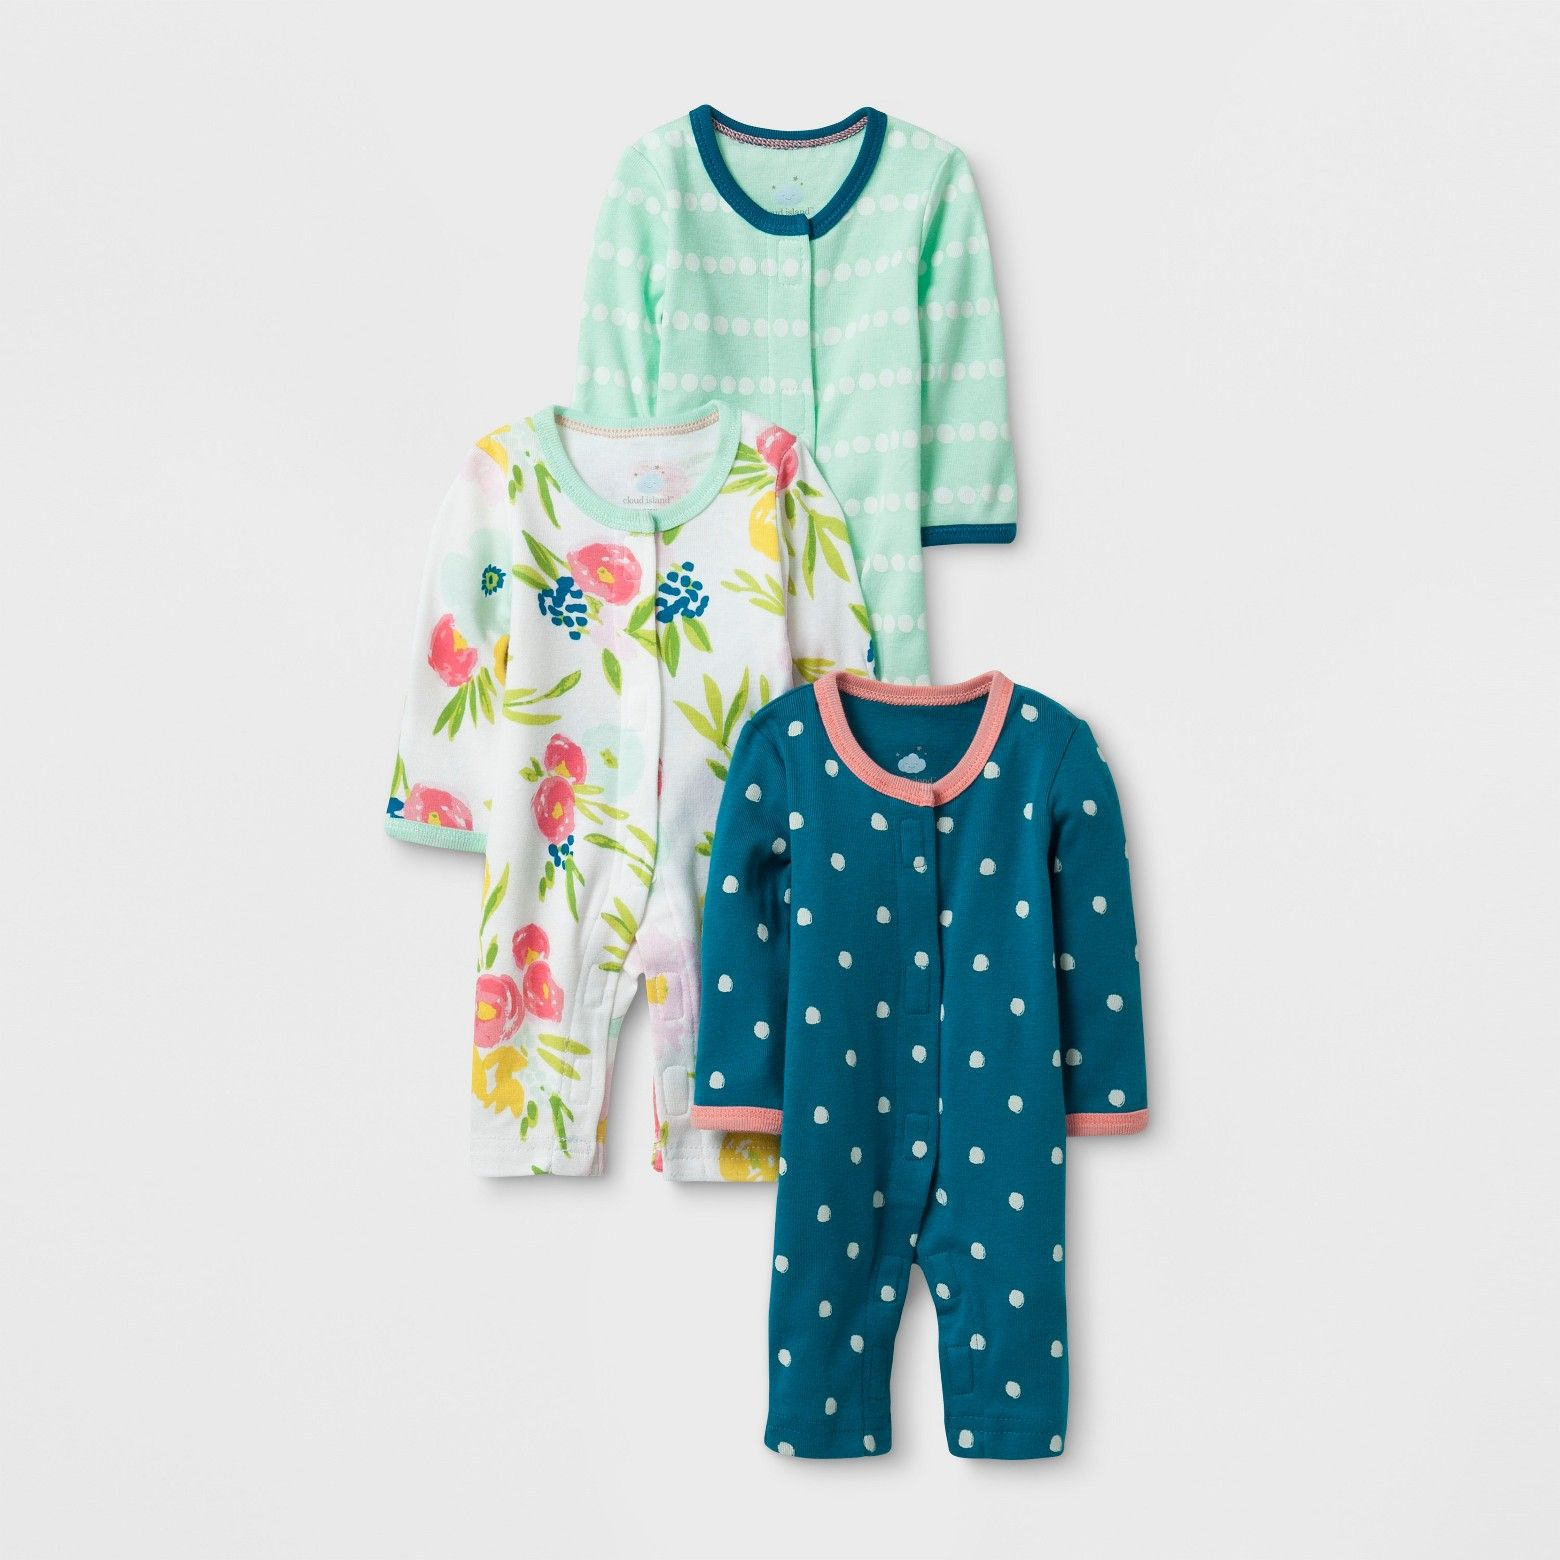 Polka dots and floral print cover the pajamas in this mint and blue